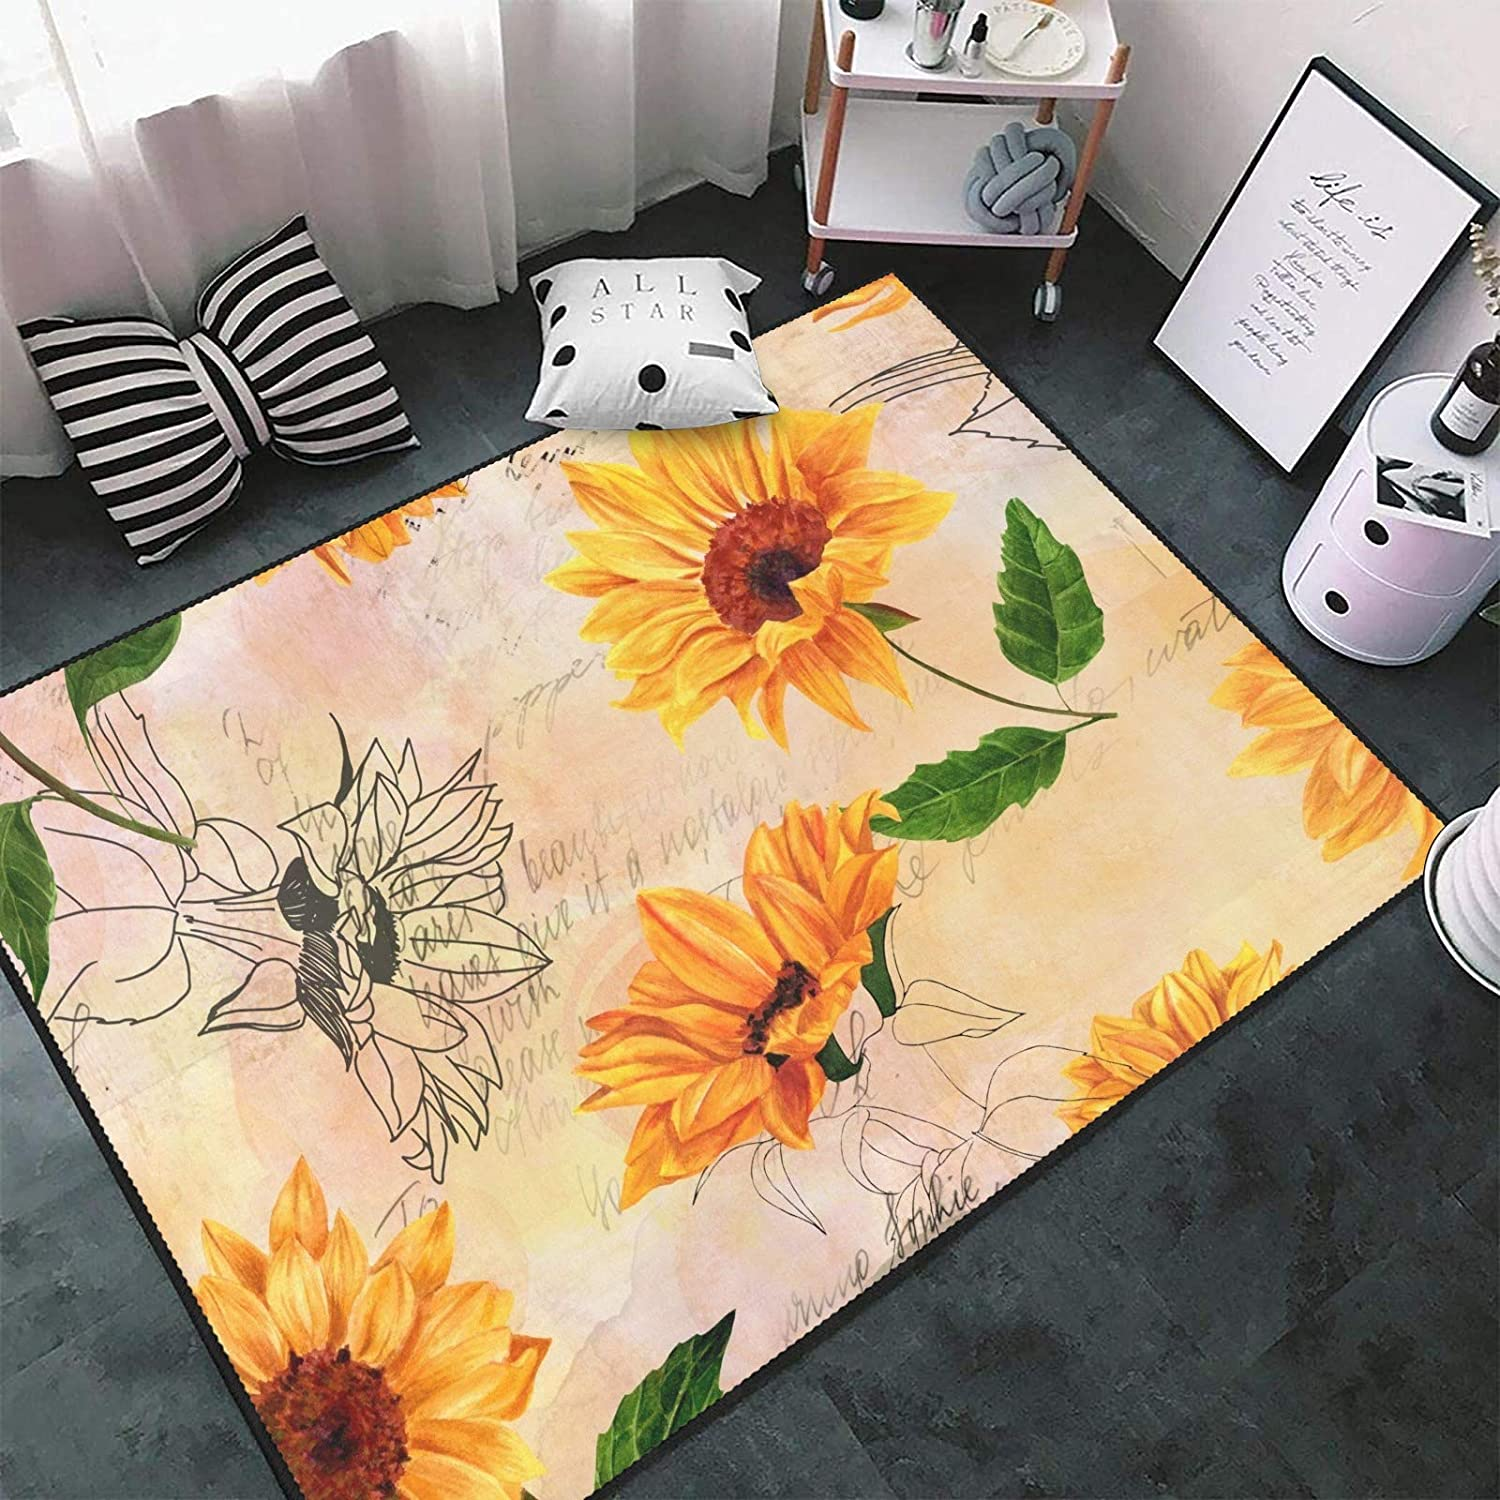 Los Angeles Mall Vintage Watercolor Sunflowers Area Rug Floor Max 80% OFF Non-Slip Carpets Ma